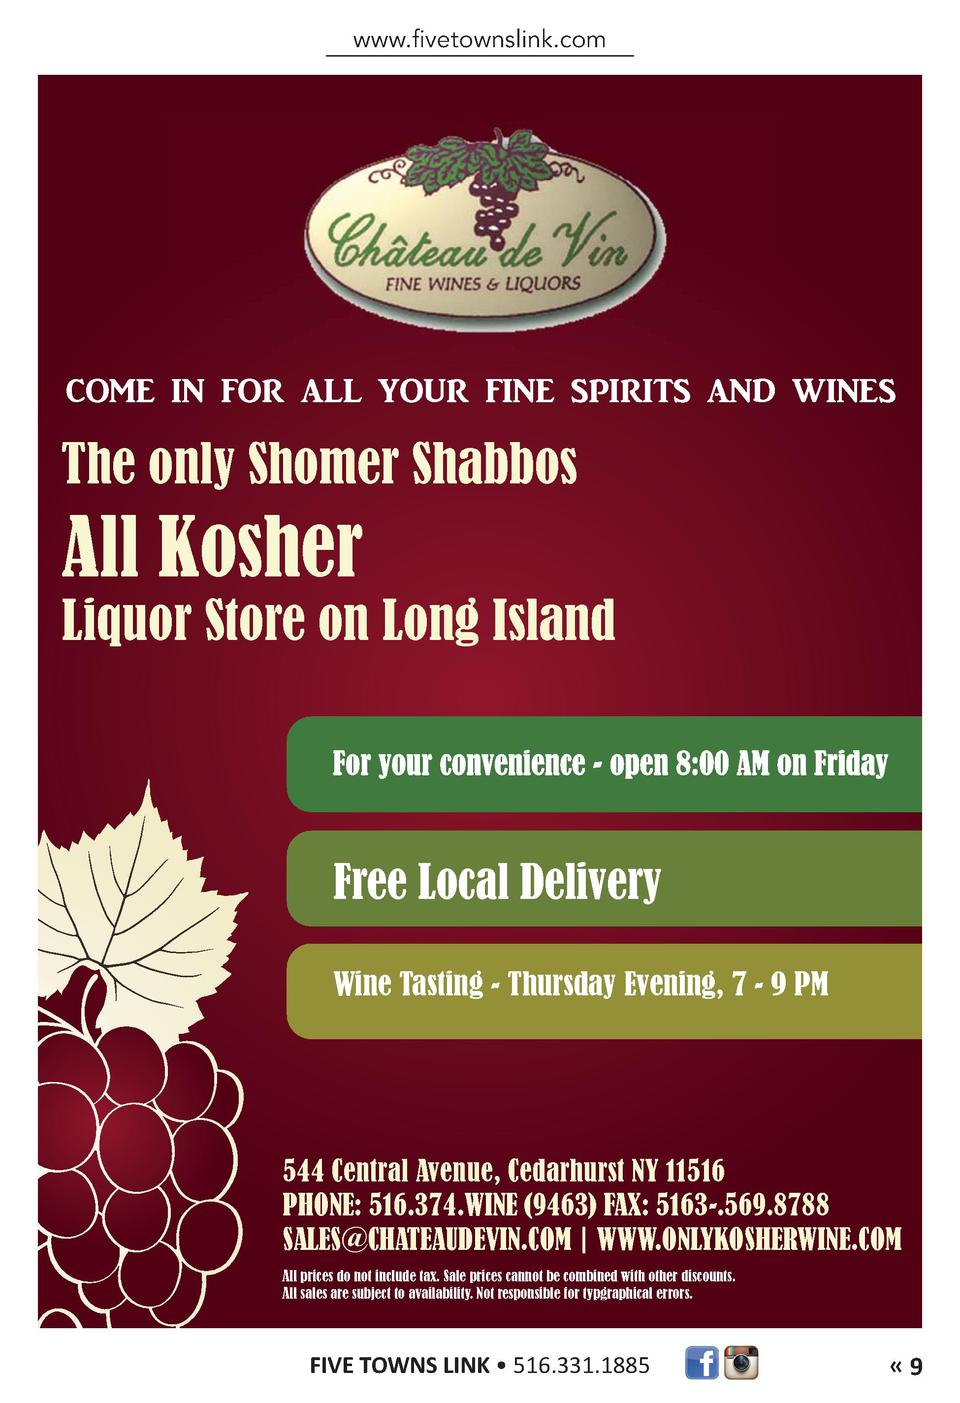 www.fivetownslink.com  COME IN FOR ALL YOUR FINE SPIRITS AND WINES  The only Shomer Shabbos  All Kosher  Liquor Store on L...